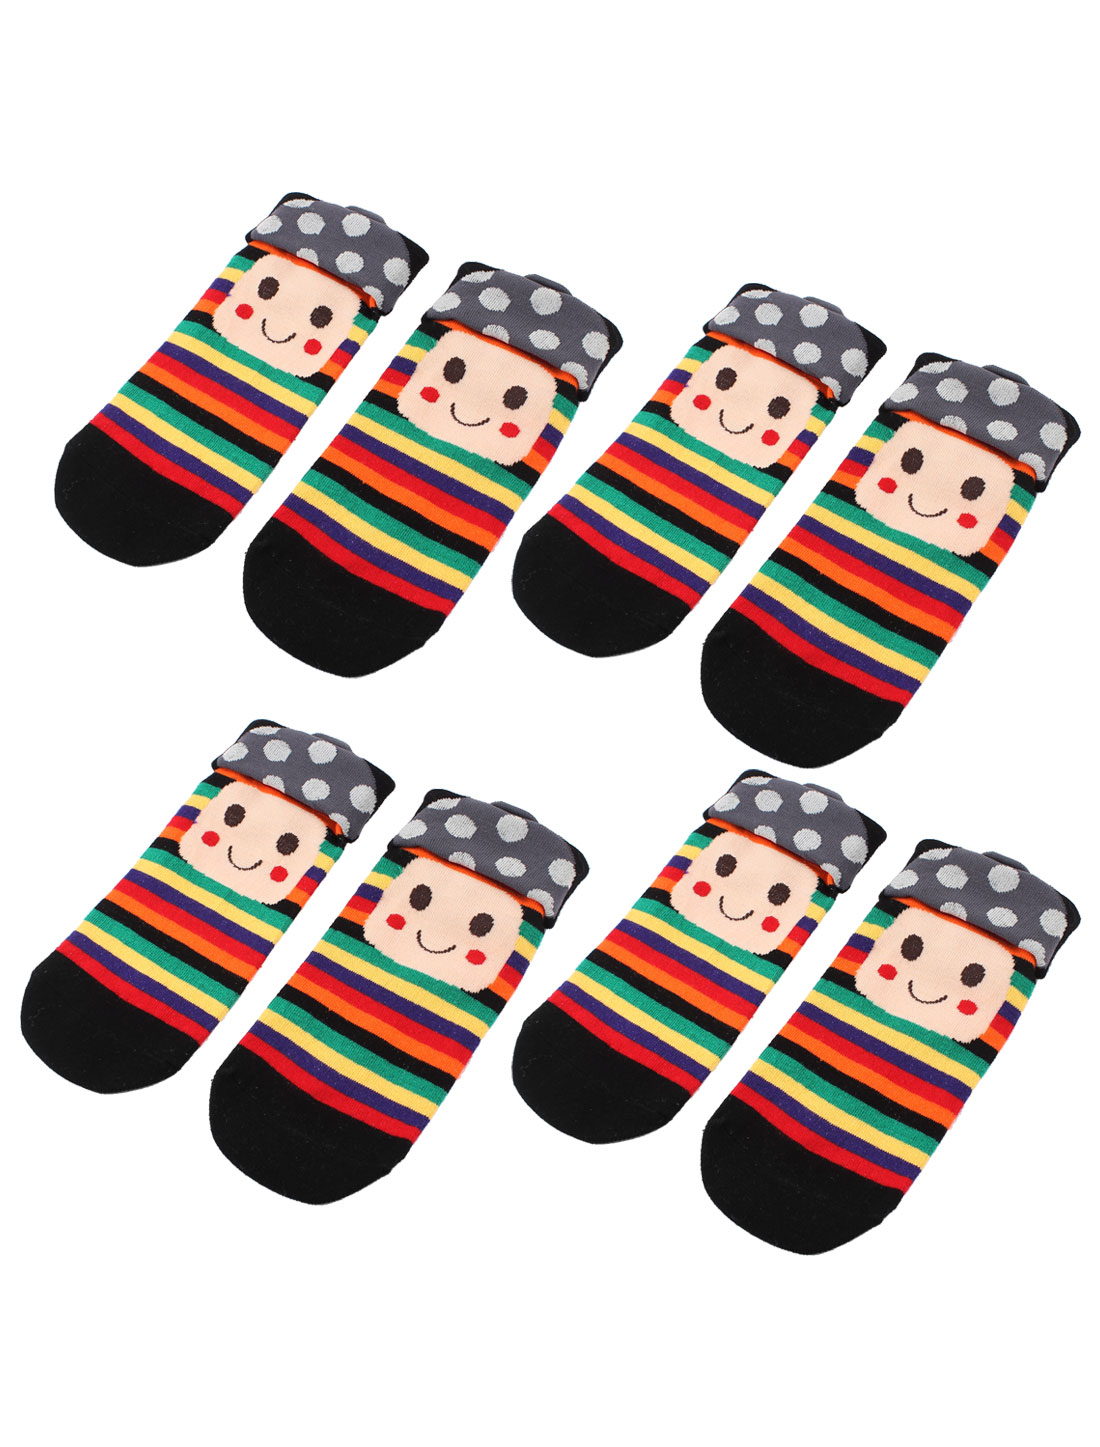 Woman Mushroom Head Stripe Pattern Stretch Cuff Crew Ankle High Sport Casual Socks Black 4 Pairs